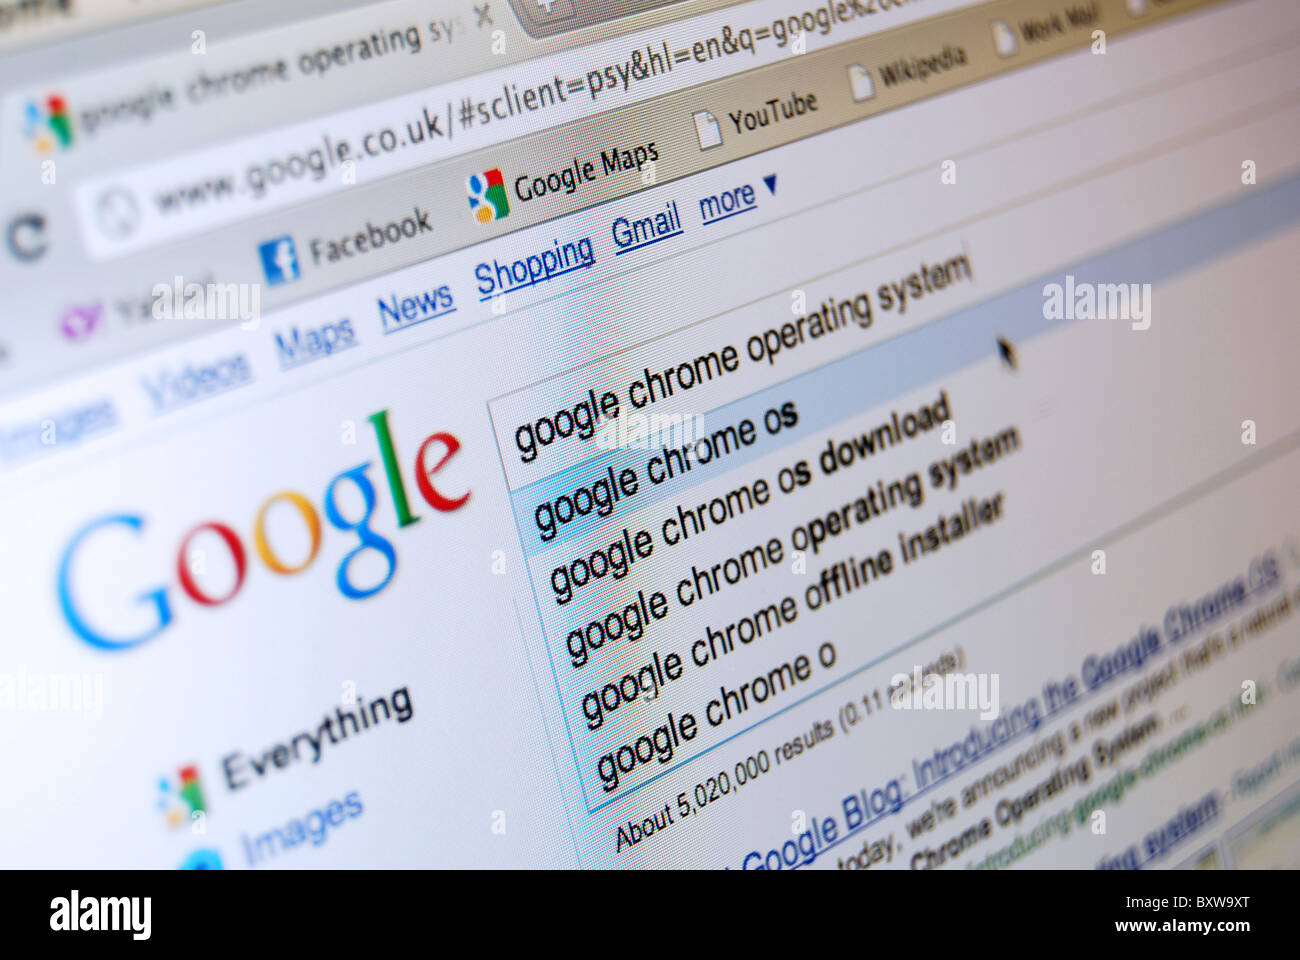 Google Chrome Stock Photos & Google Chrome Stock Images - Alamy